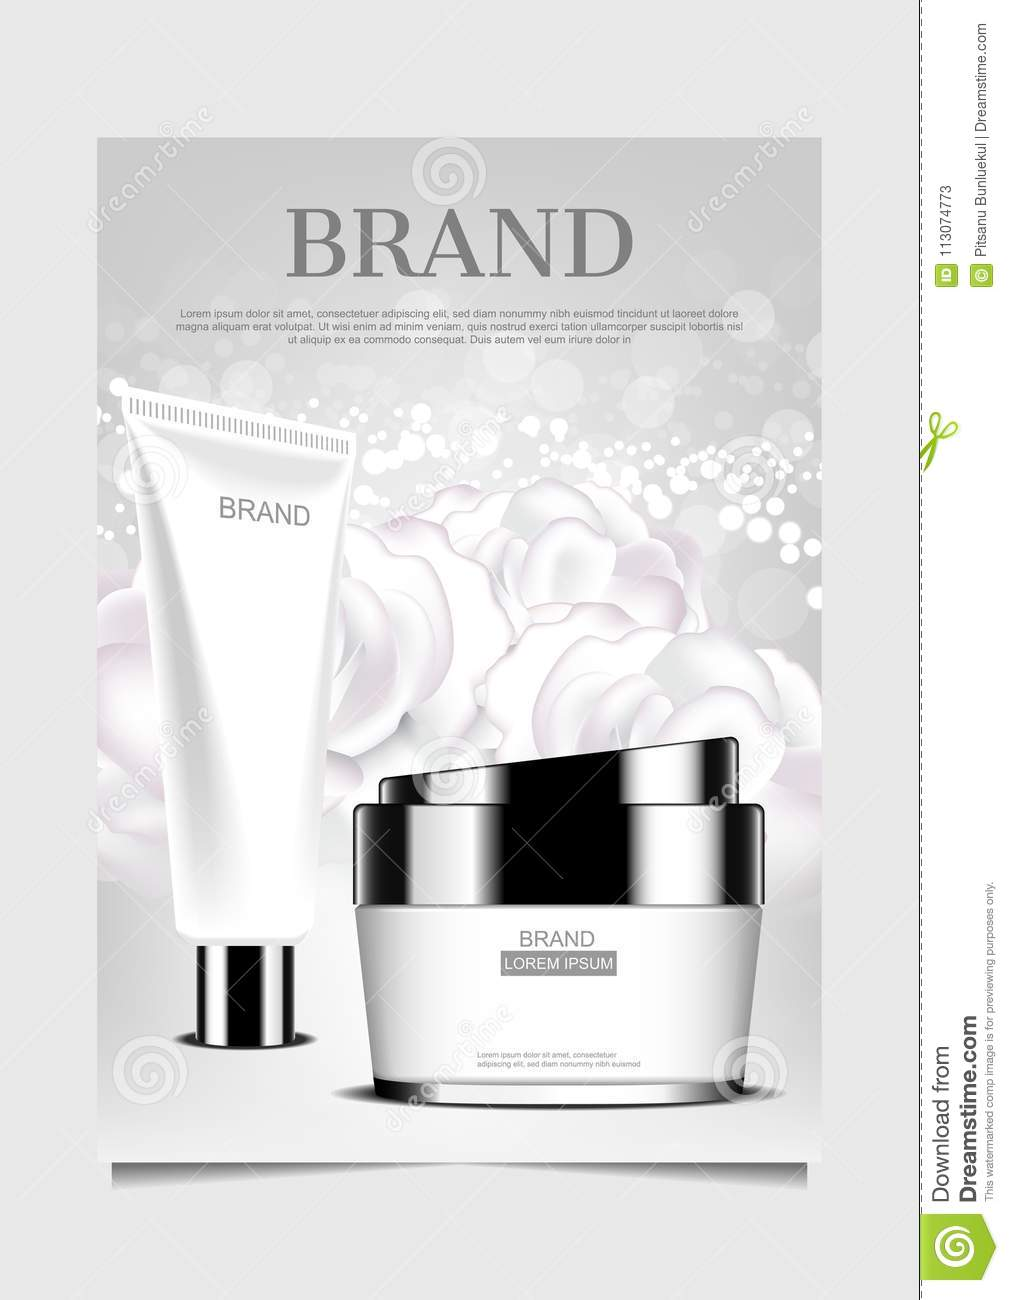 Facial Foam And Cream On White Flowers Background Design For Pos